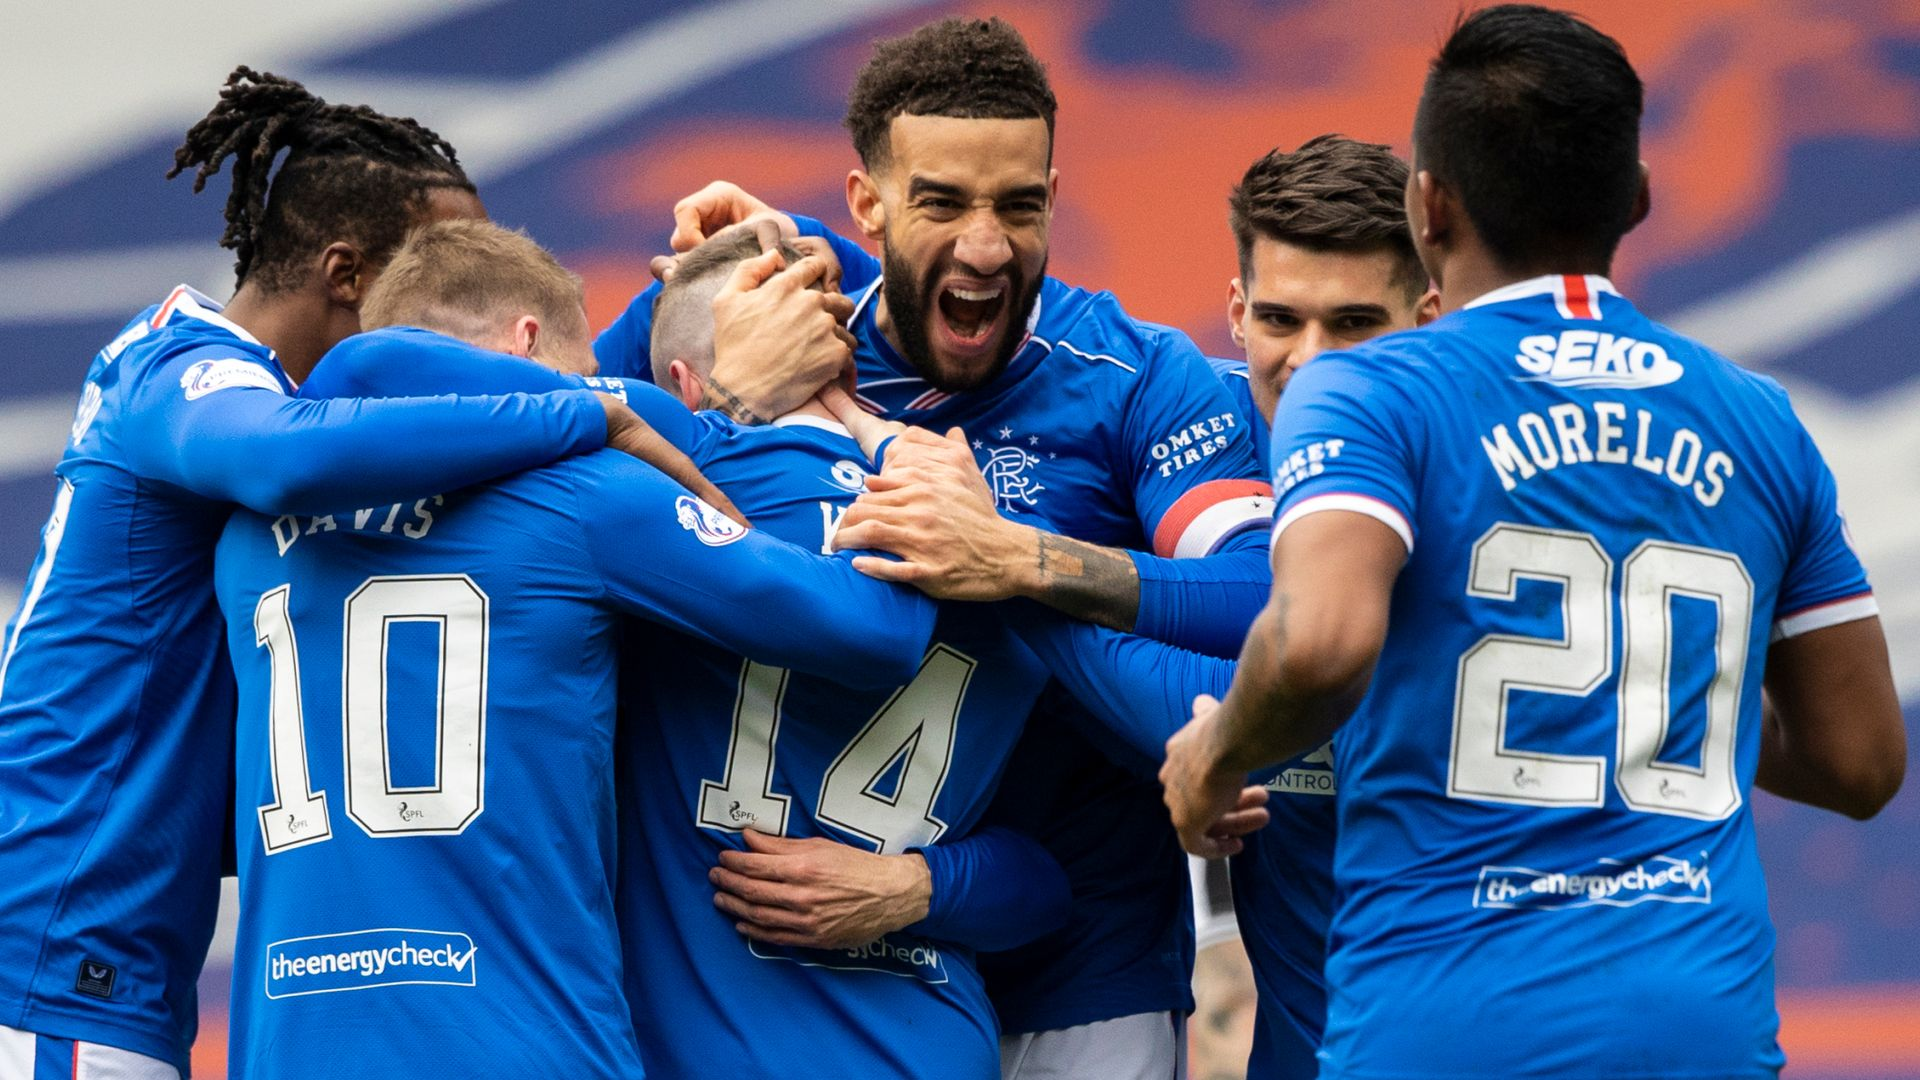 Rangers on cusp of title after win over St Mirren